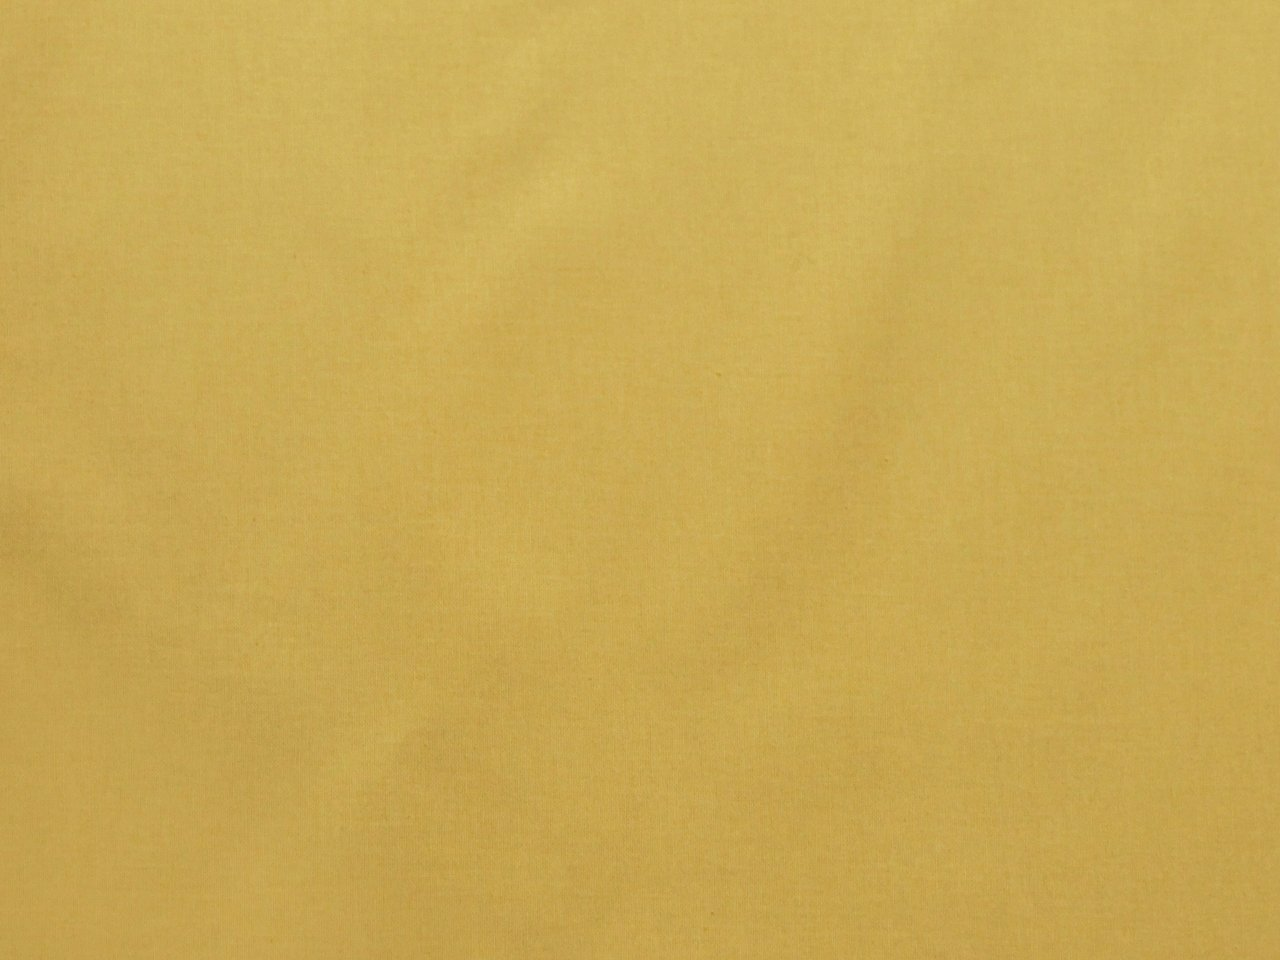 Quilt Fabric yellow ocher David Textiles